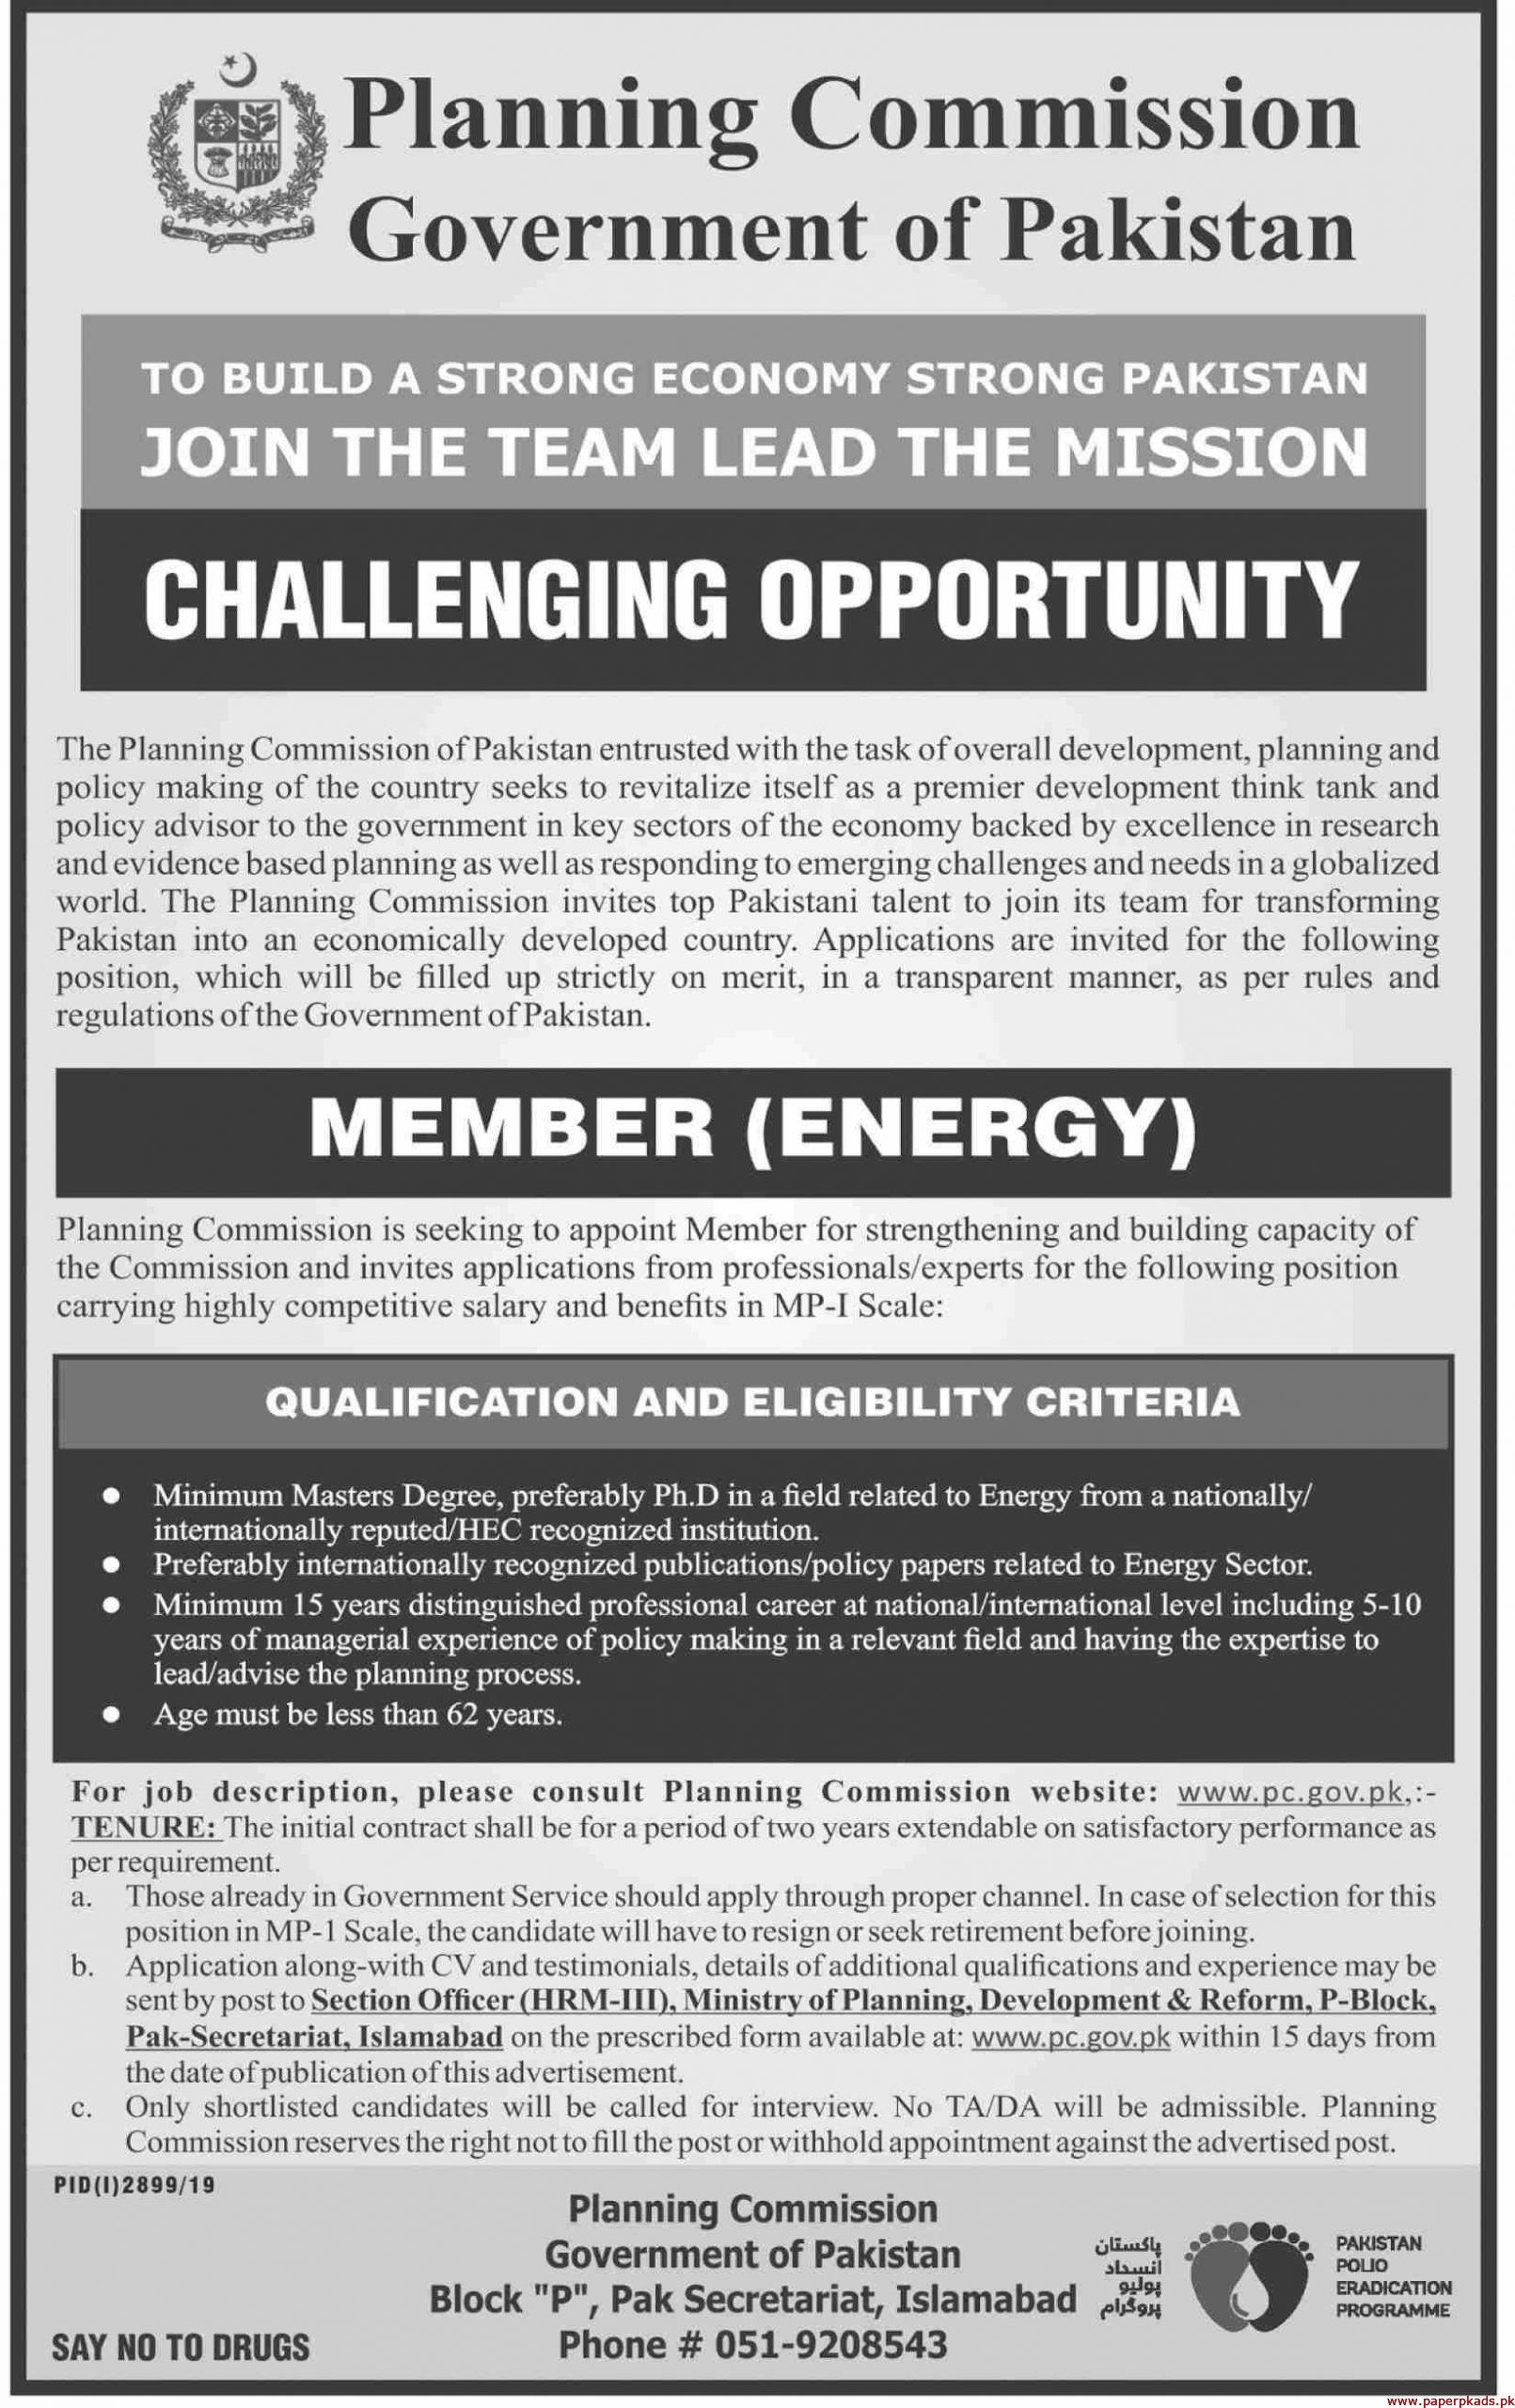 Government of Pakistan Jobs in Planning Commission 2019